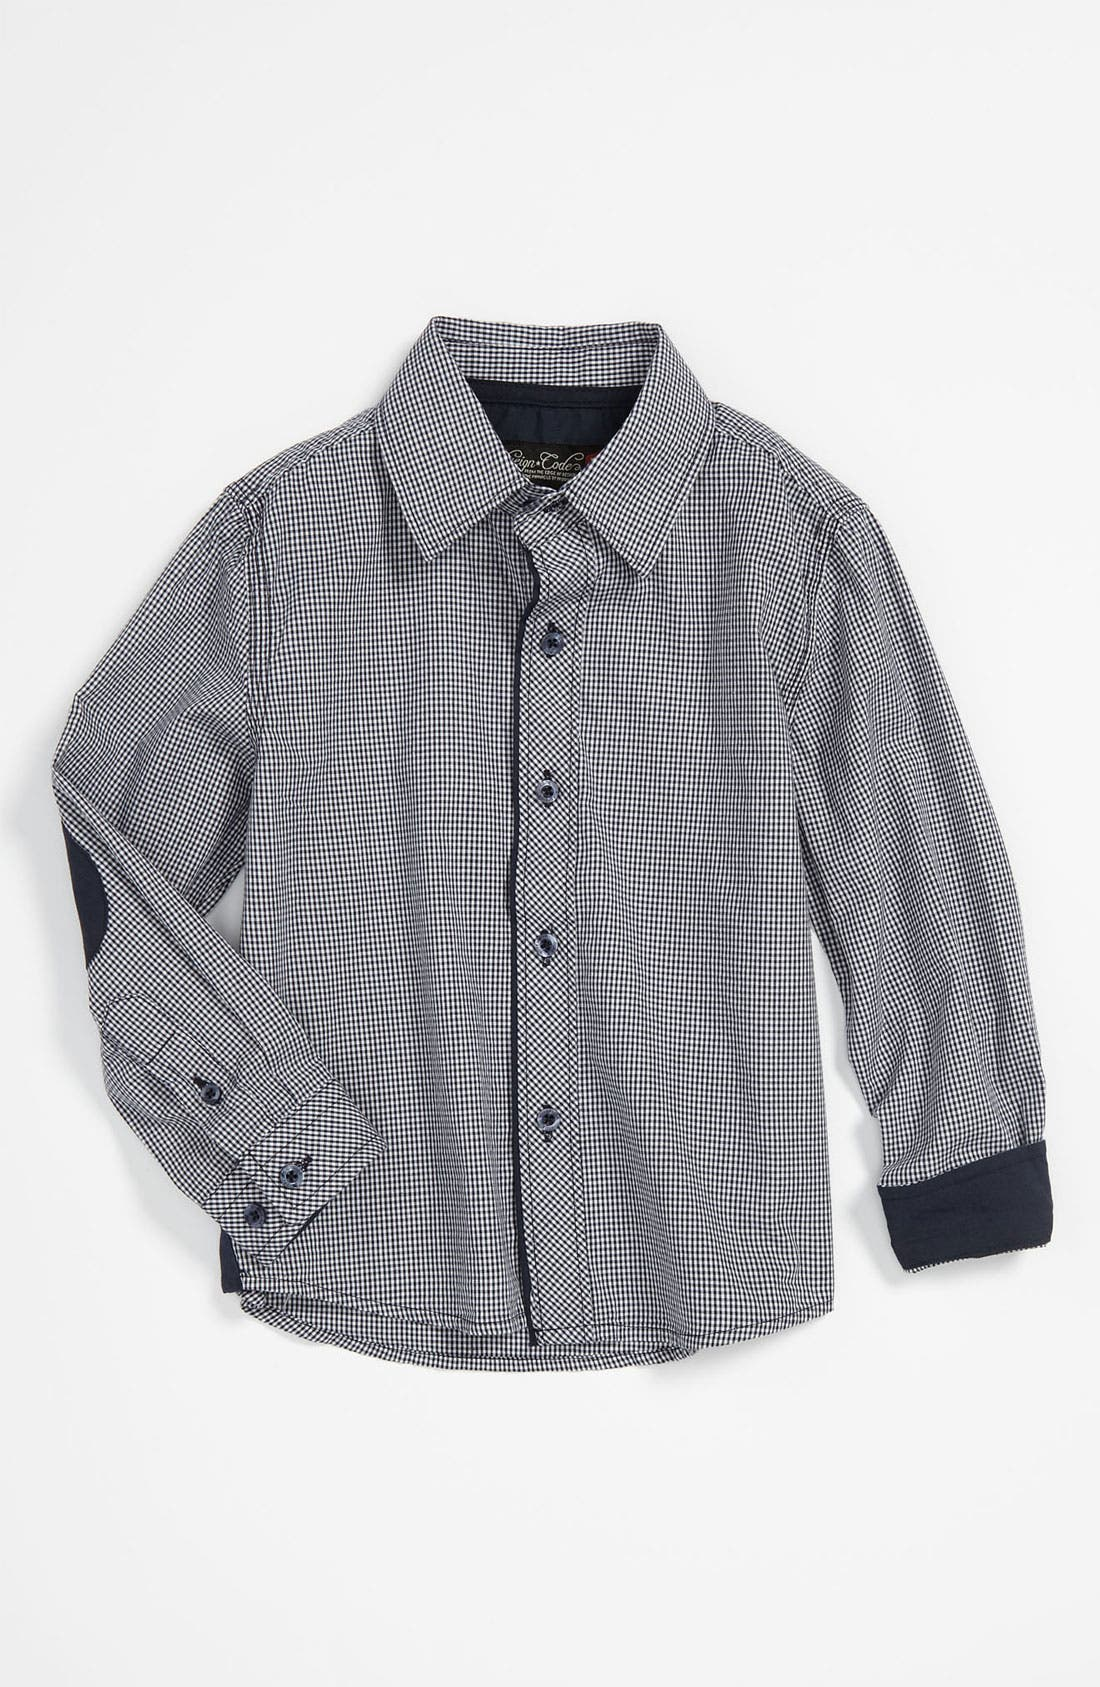 Alternate Image 1 Selected - Sovereign Code Gingham Shirt (Infant)